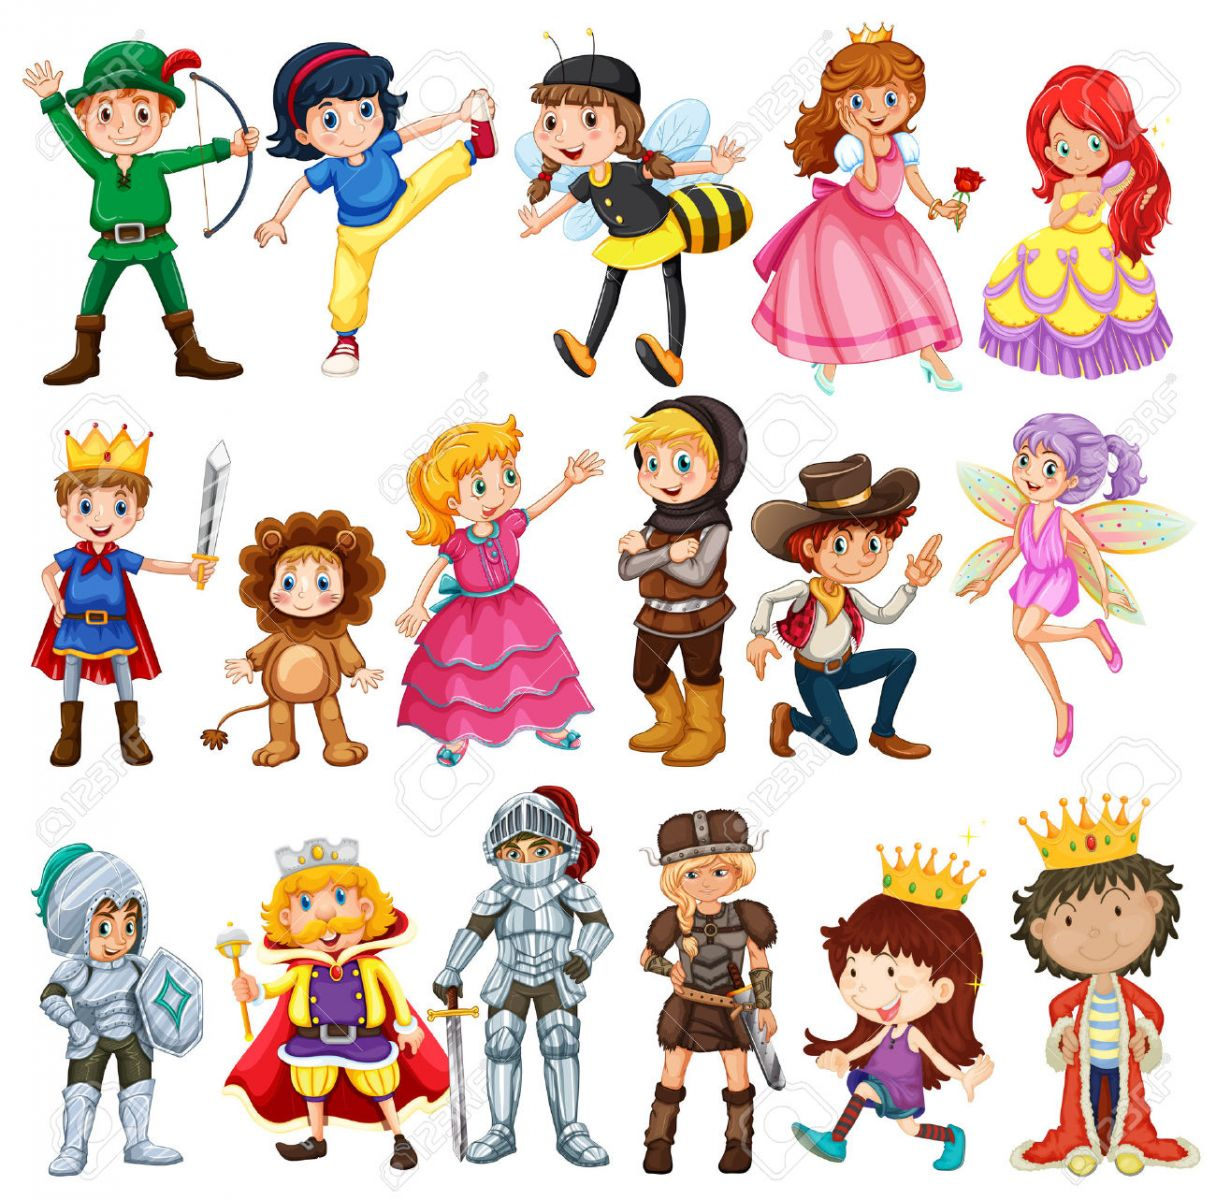 Book character parade clipart png free library Garrett Primary School - Index png free library